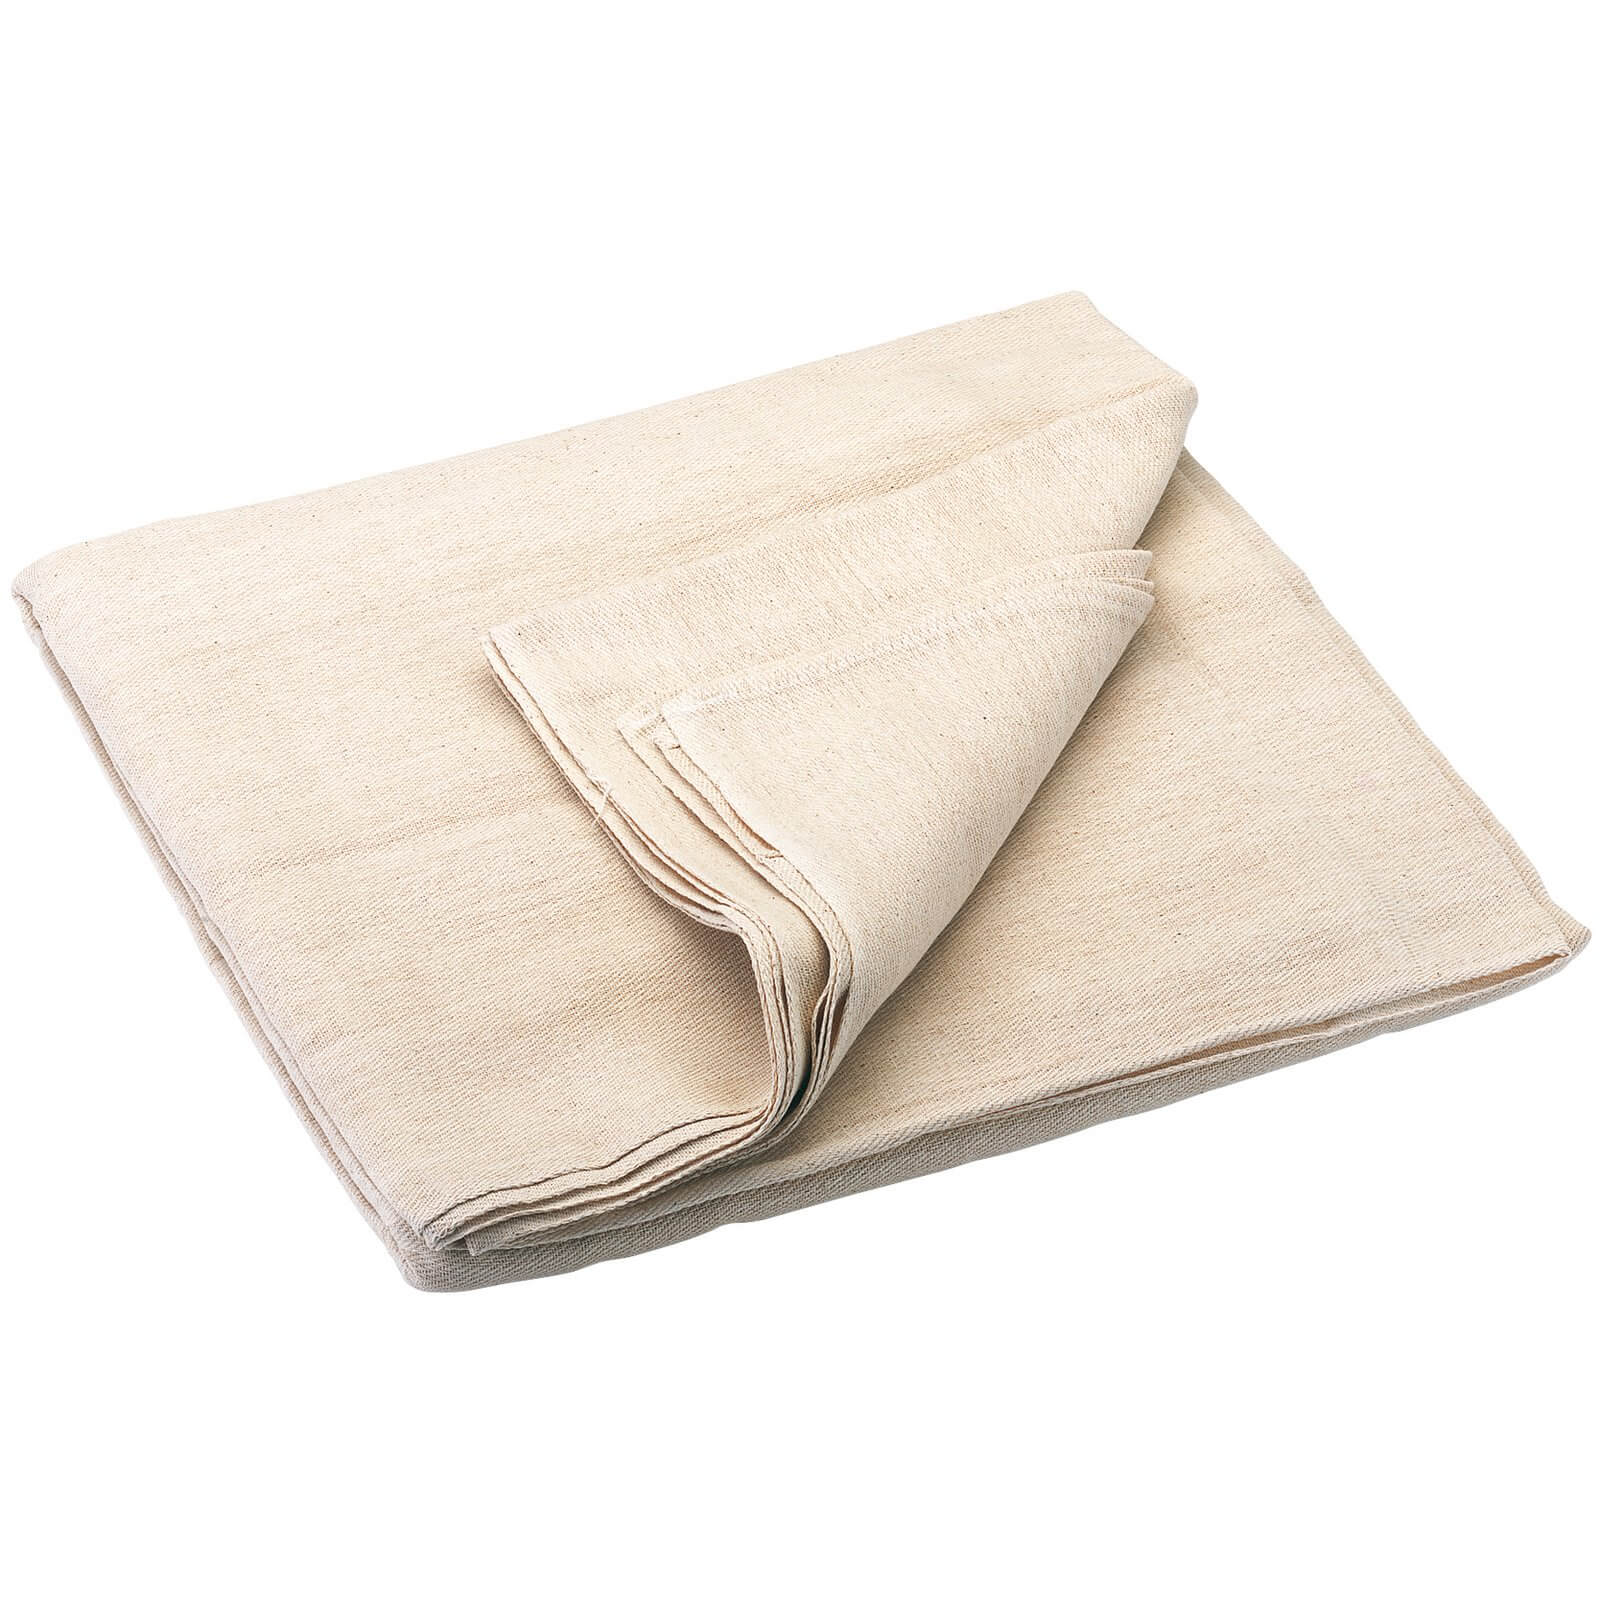 Image of Draper Cotton Dust Sheet 3.6m 2.7m Pack of 1